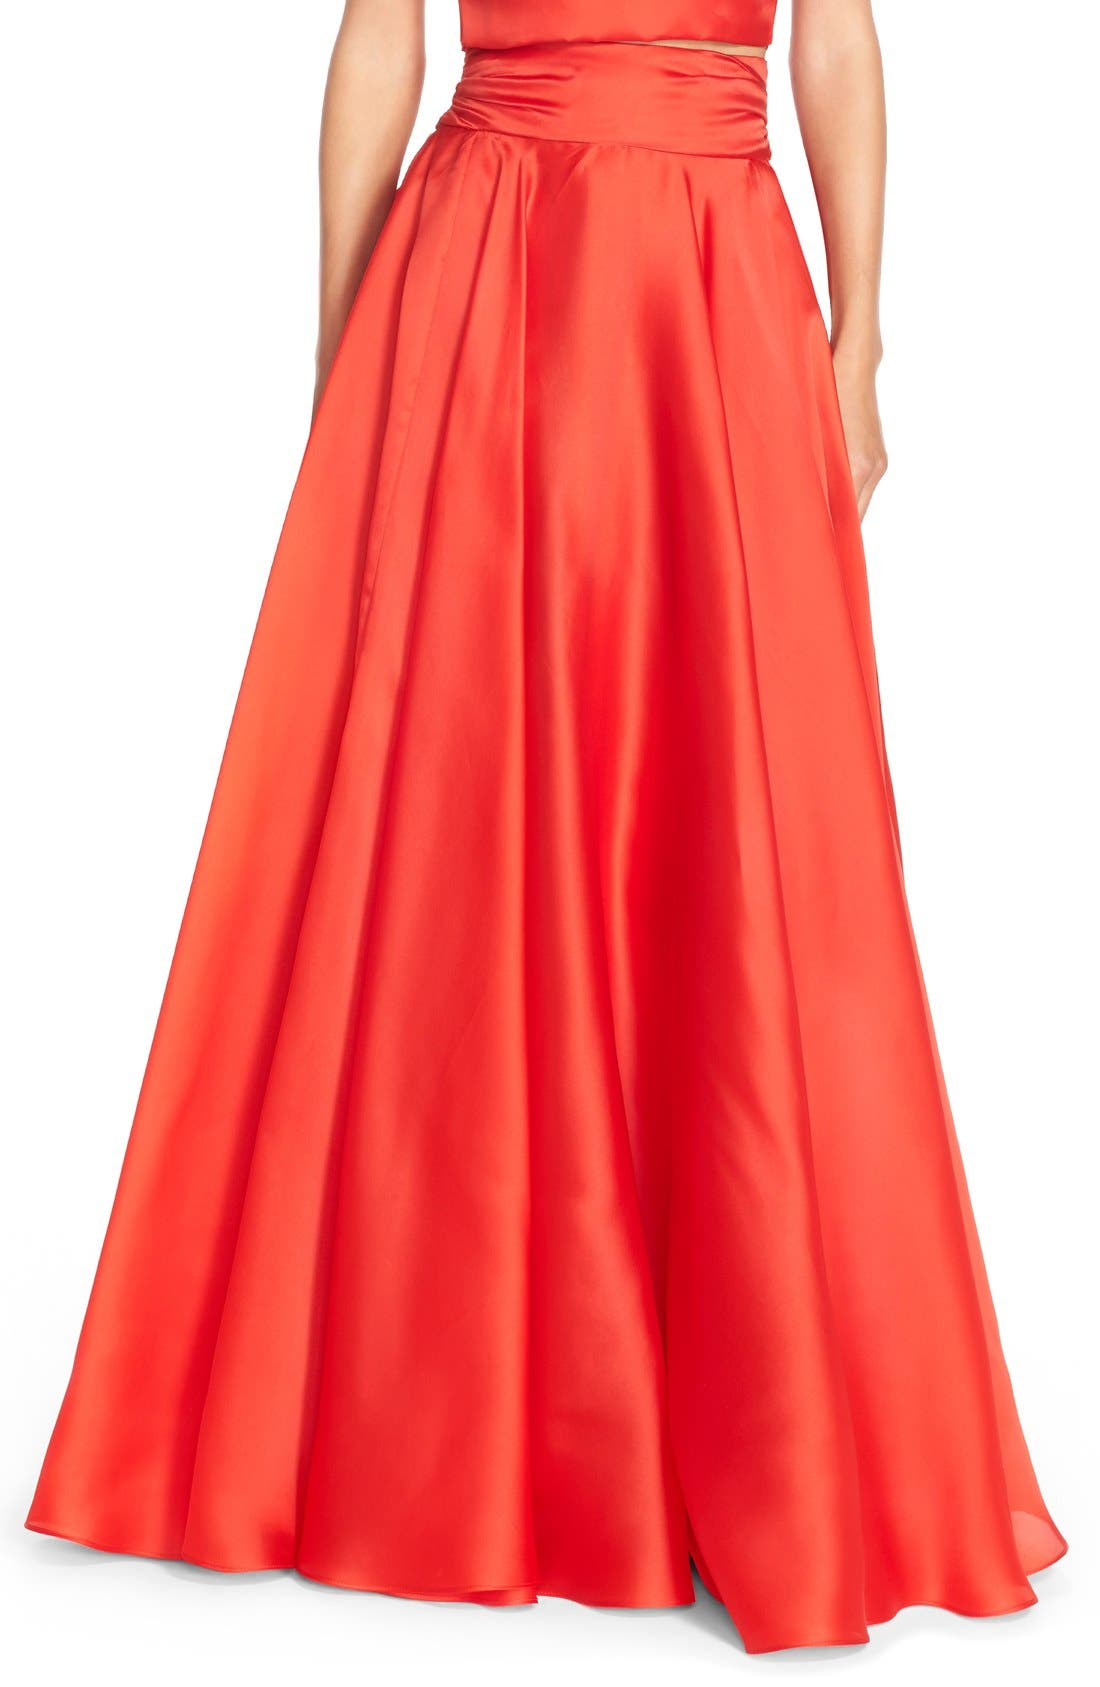 Main Image - Milly Silk Satin Bow Back Ball Skirt